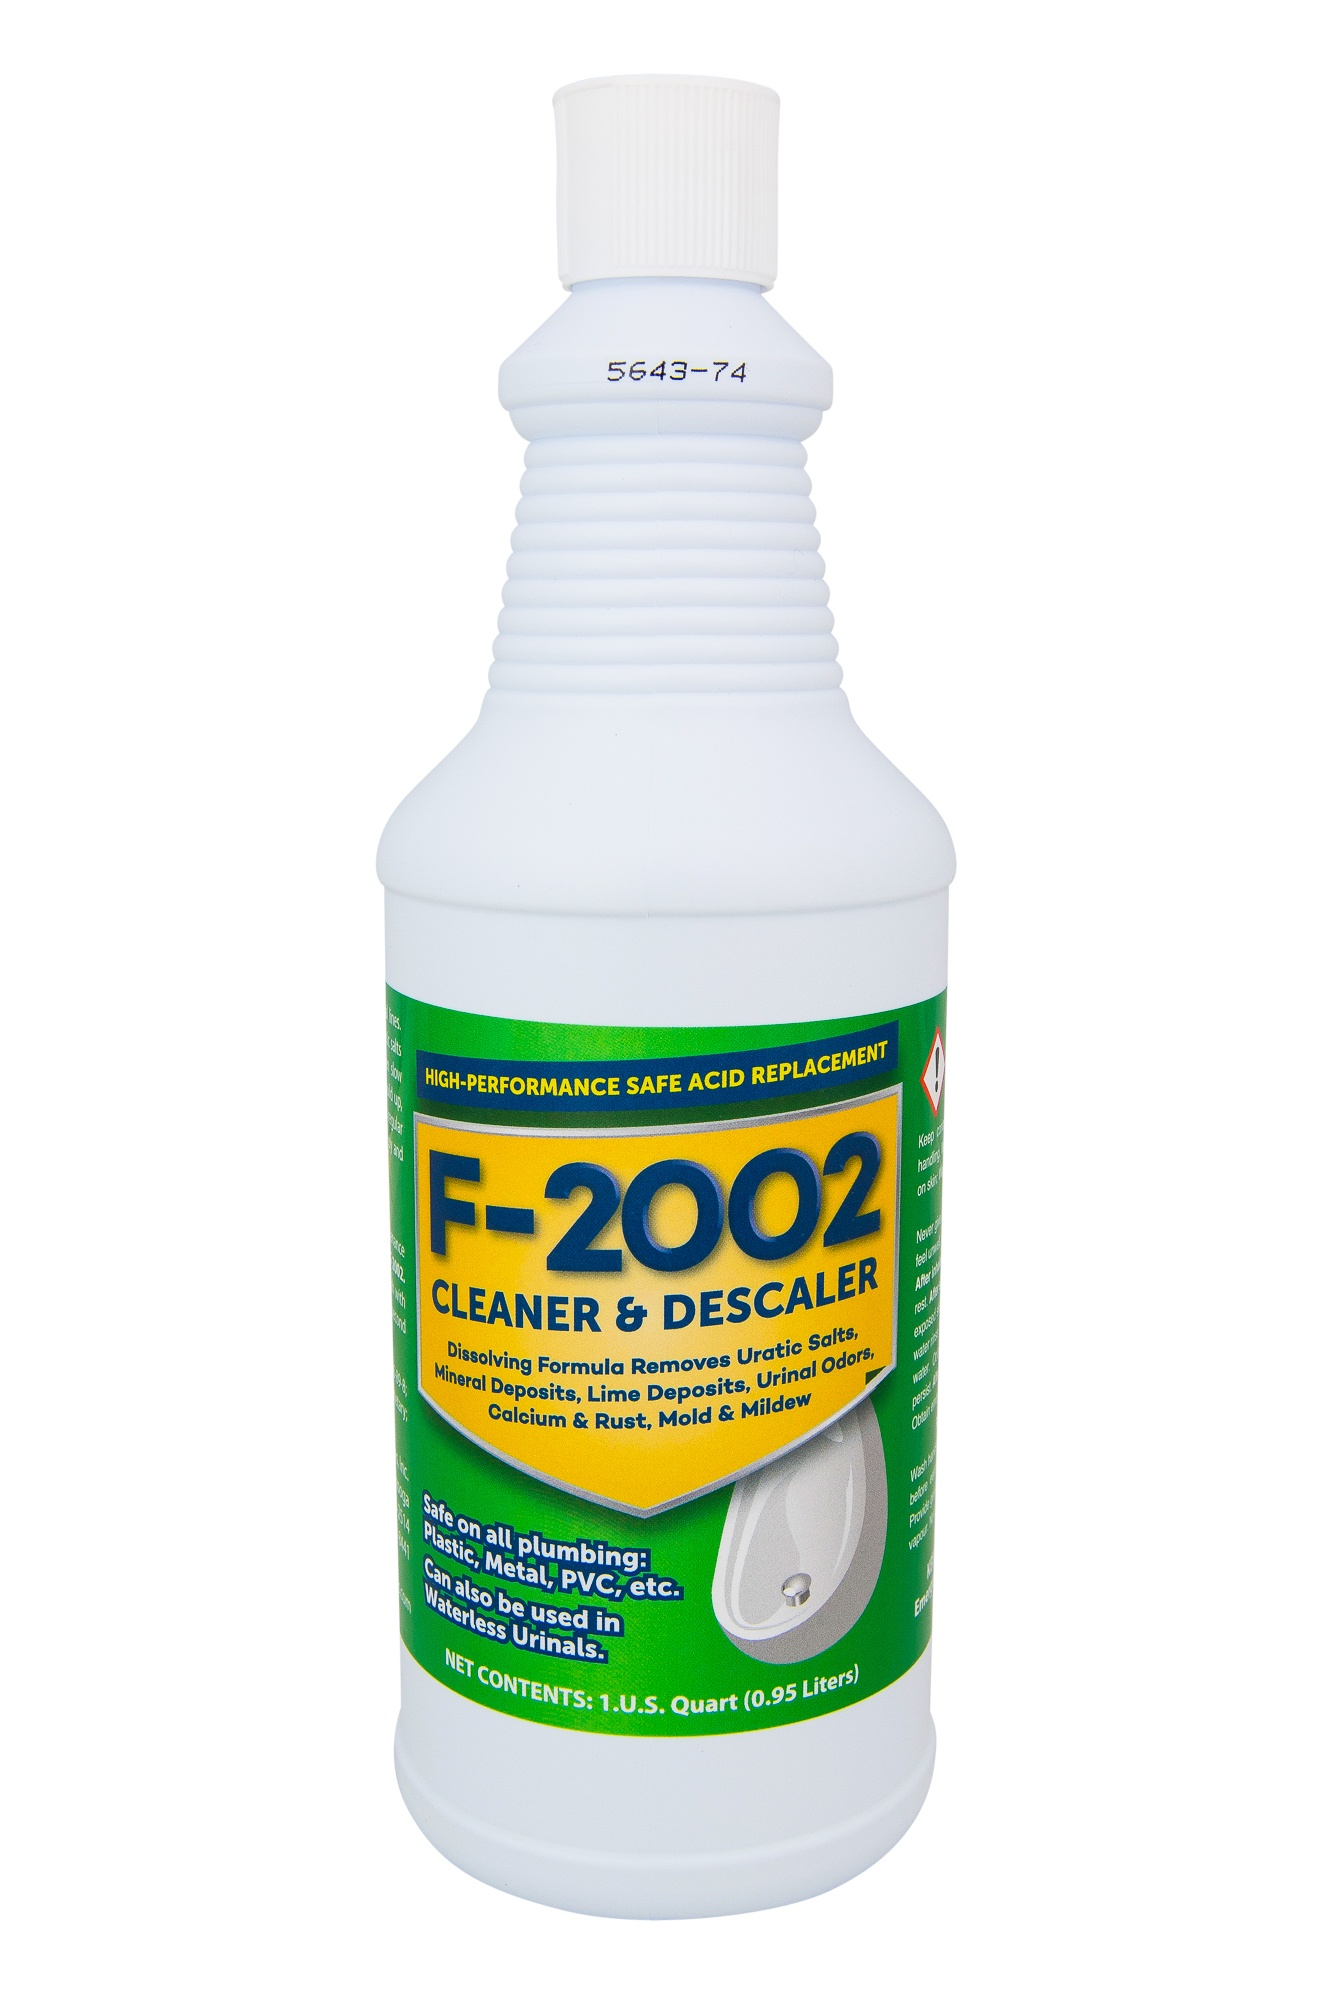 F-2002 an Acid Replacement Cleaner that Dissolves Uratic Salts